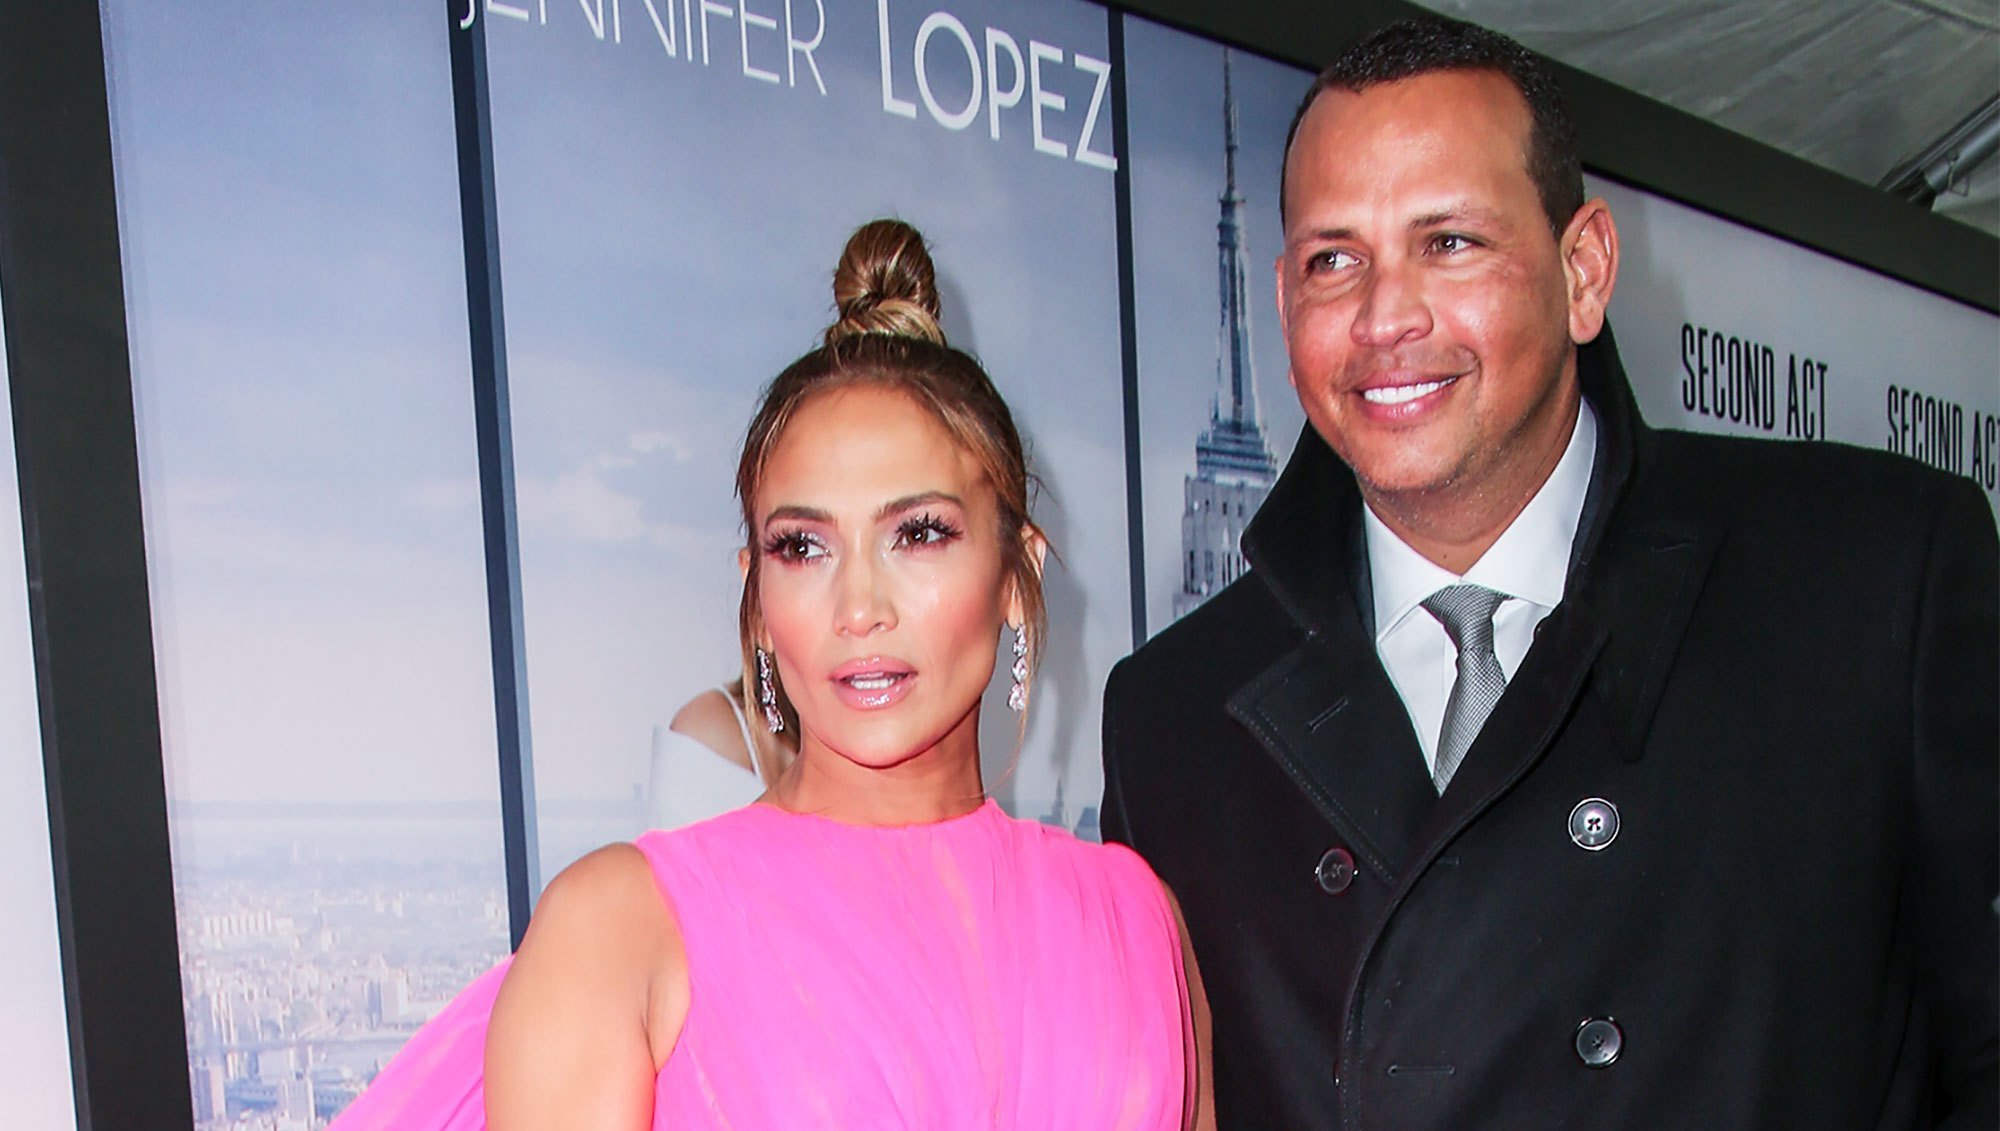 Alex Rodriguez Shares Video of Jennifer Lopez Showing Off Fortnite-Inspired Dance Moves on Christmas Morning: 'Still a Kid'